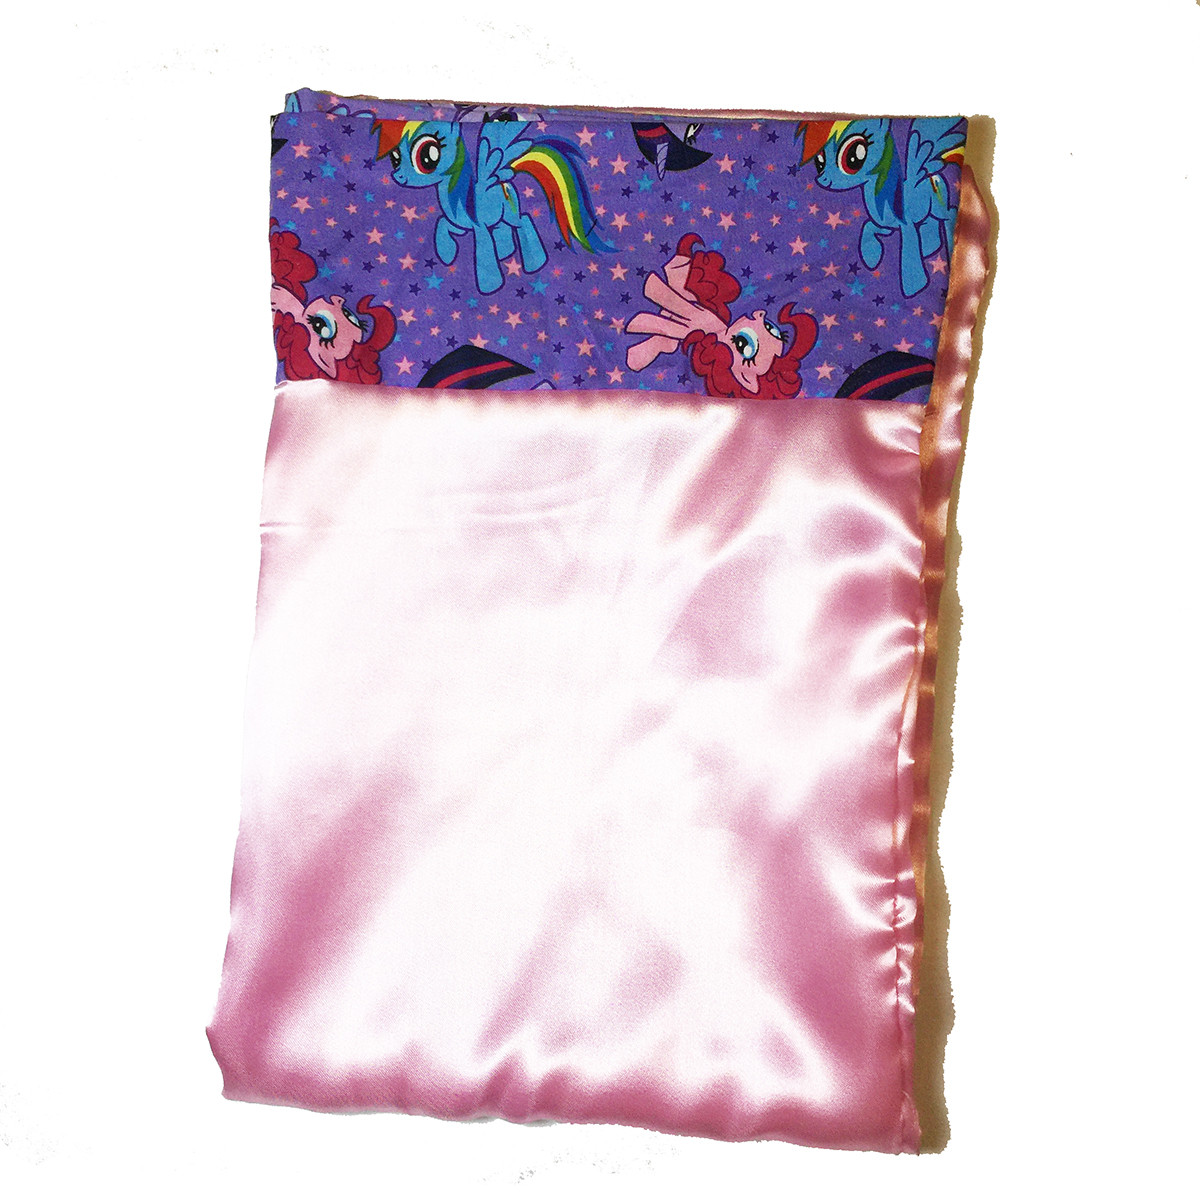 Satin Pillowcase Prevent Hair Loss: Pinky Pie Pony Satin Pillowcase